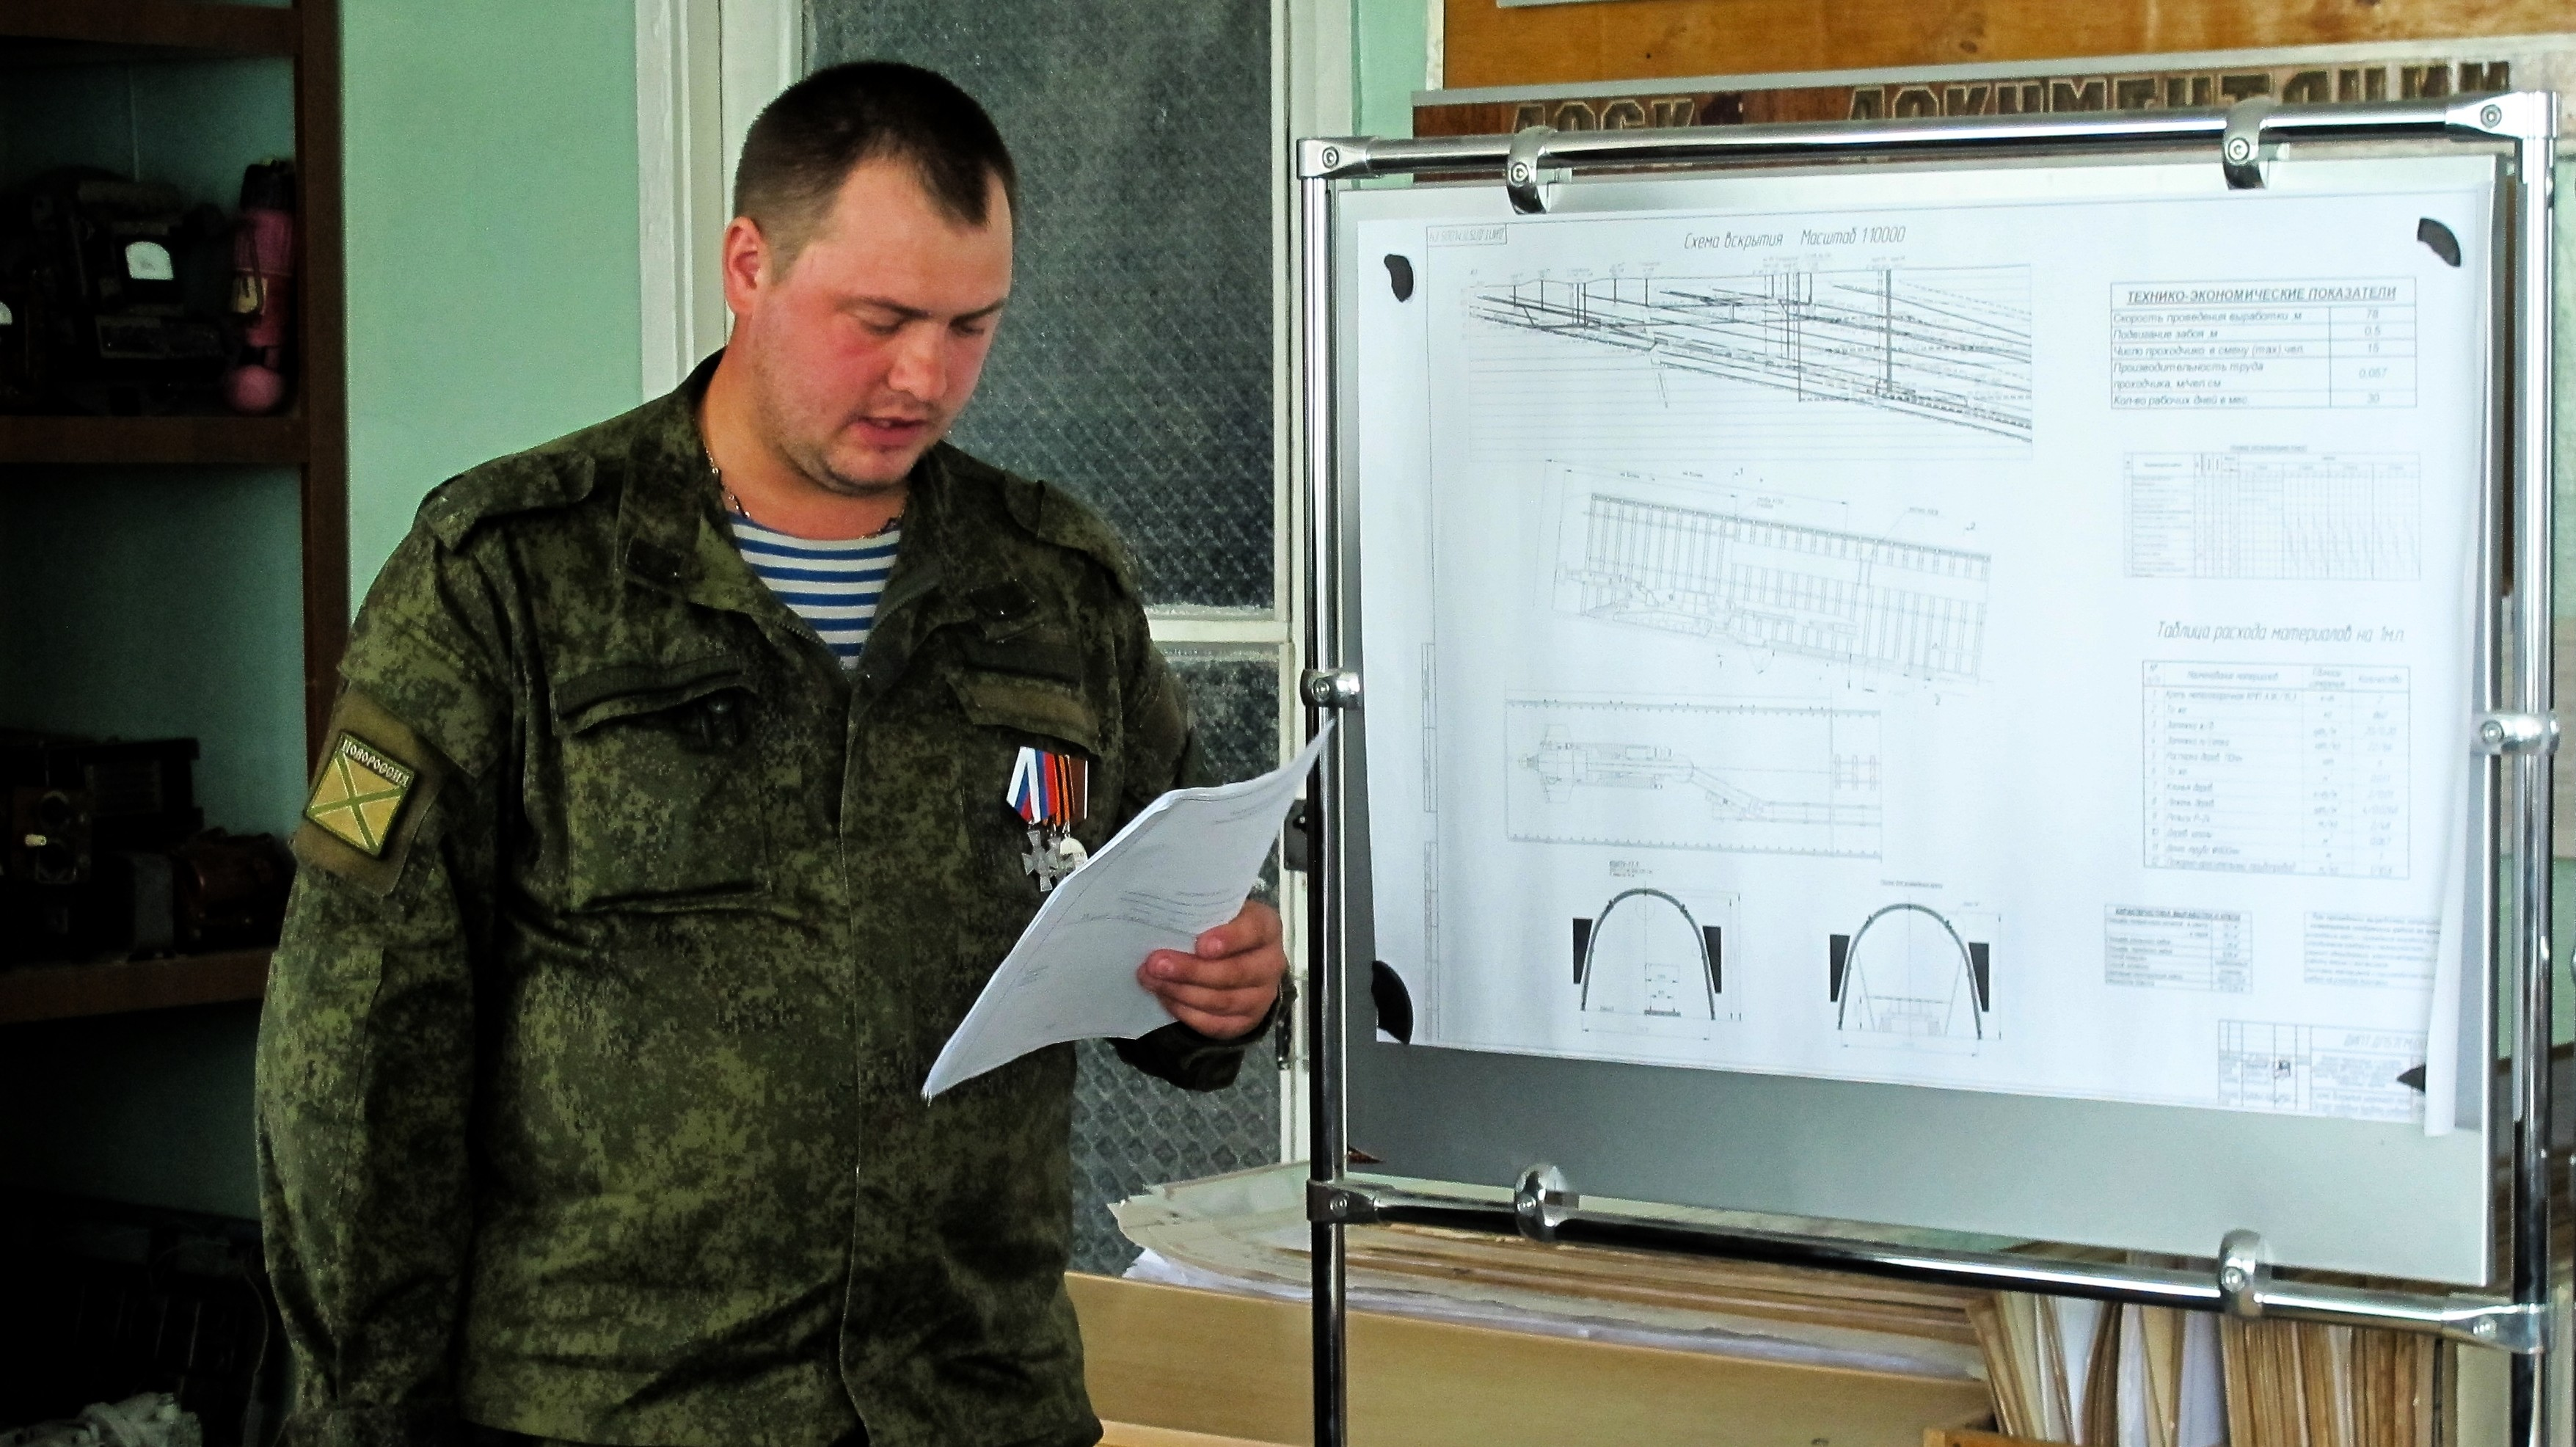 Textbooks and Assault Rifles: The Student Soldiers in Rebel-Held Ukraine